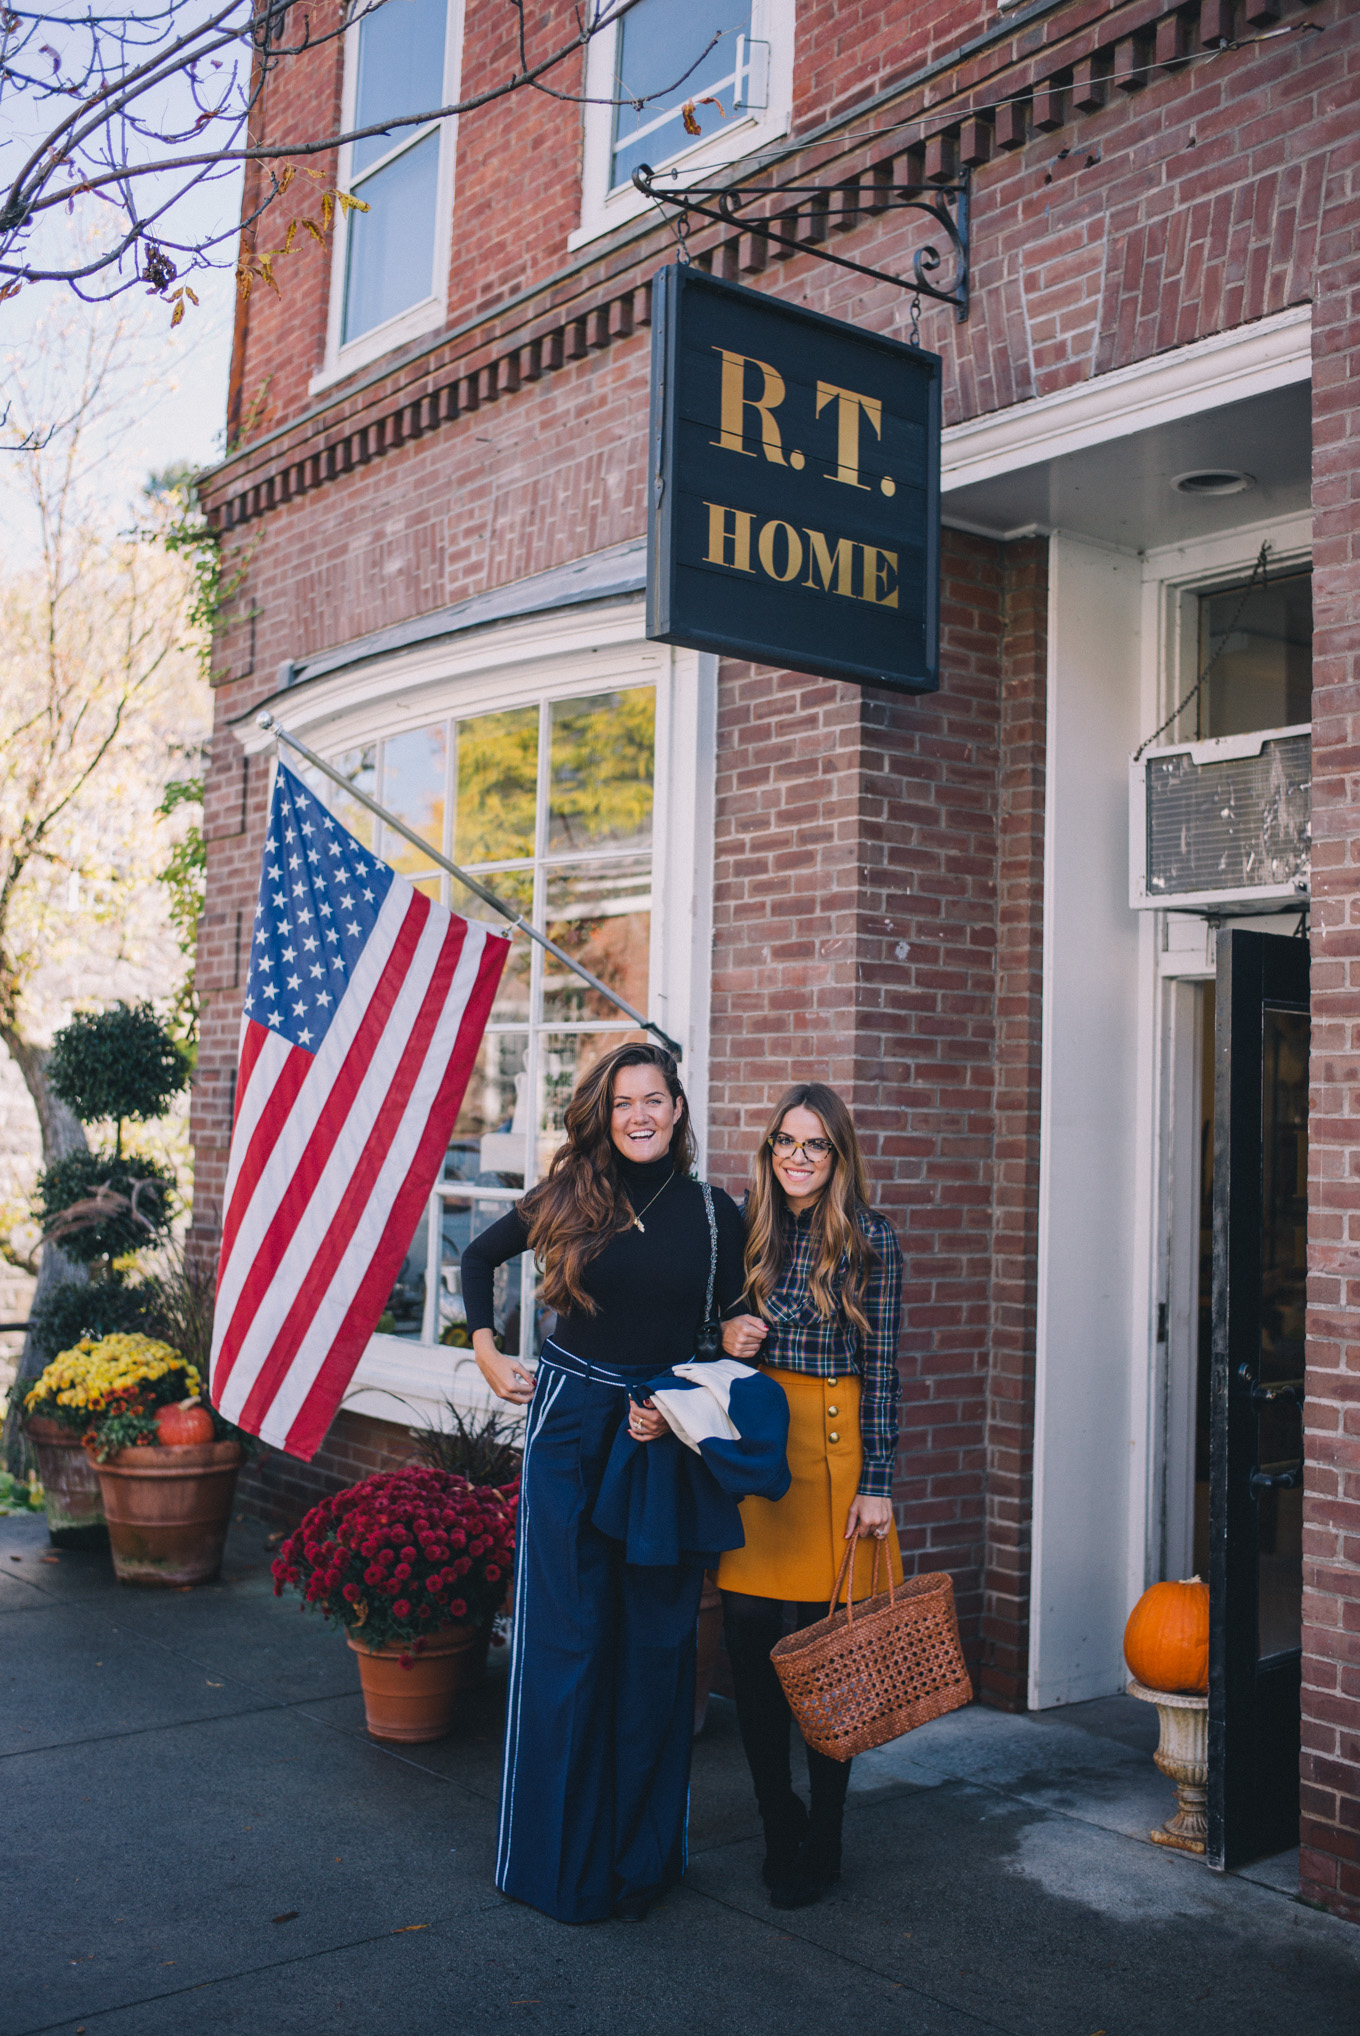 gmg-woodstock-vermont-fall-1002806